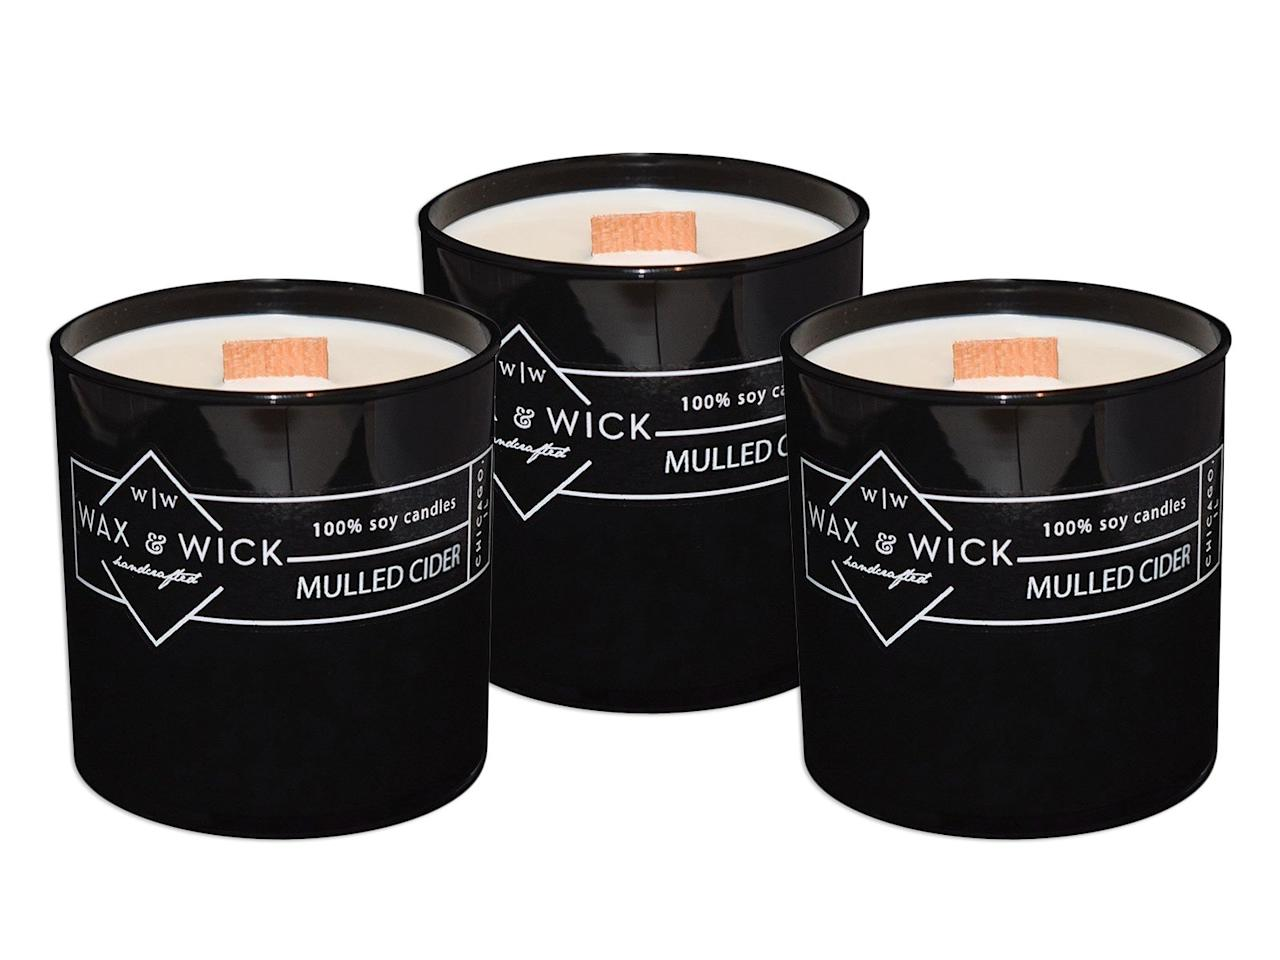 "<p>This super-woodsy and long-burning candle smells almost as good as mulled cider tastes.</p> <p><i>Wax and Wick Mulled Cider Soy Candle, $25 at </i><a href=""https://www.amazon.com/Scented-Soy-Candle-Cleanly-Caramel/dp/B01FVE194K/ref=as_li_ss_tl?ie=UTF8&linkCode=ll1&tag=fwfoodscentedcandles1119-20&linkId=208d2304946222c7c32980f744604913&language=en_US"" target=""_blank""><i>amazon.co</i><i>m</i></a></p>"